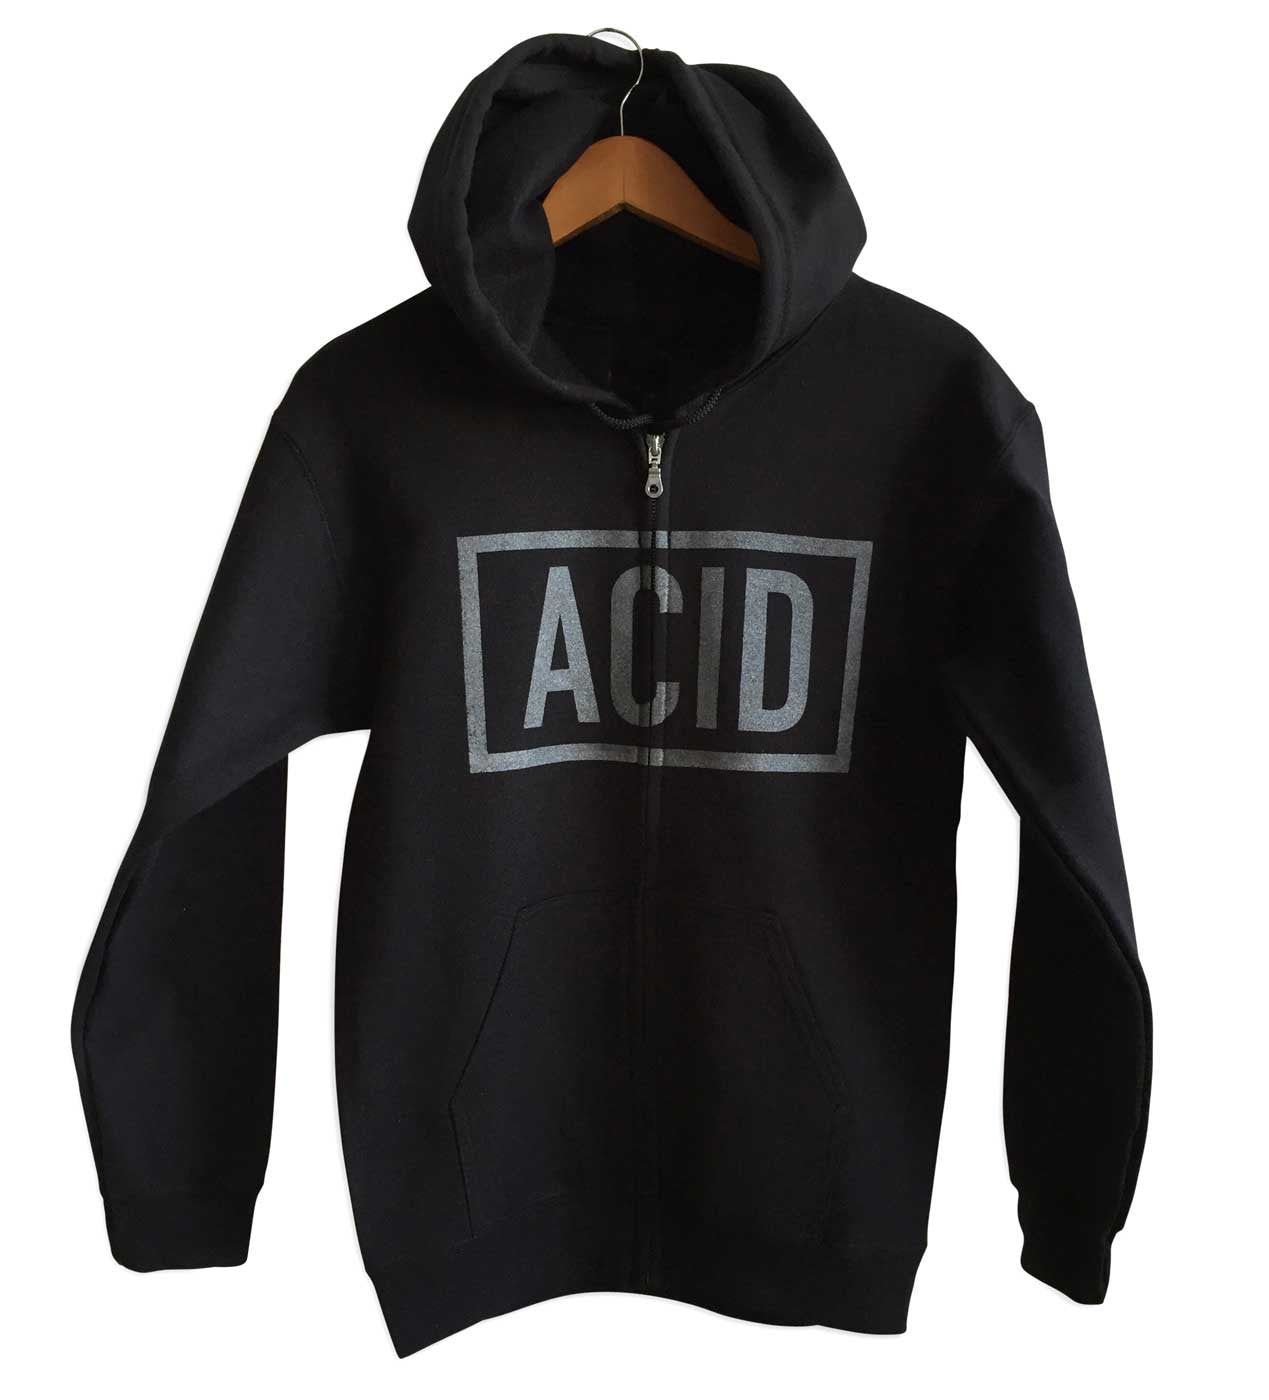 Acid text print unisex zip up hoodie well done goods acid text print black unisex zip up hoodie well done goods malvernweather Image collections